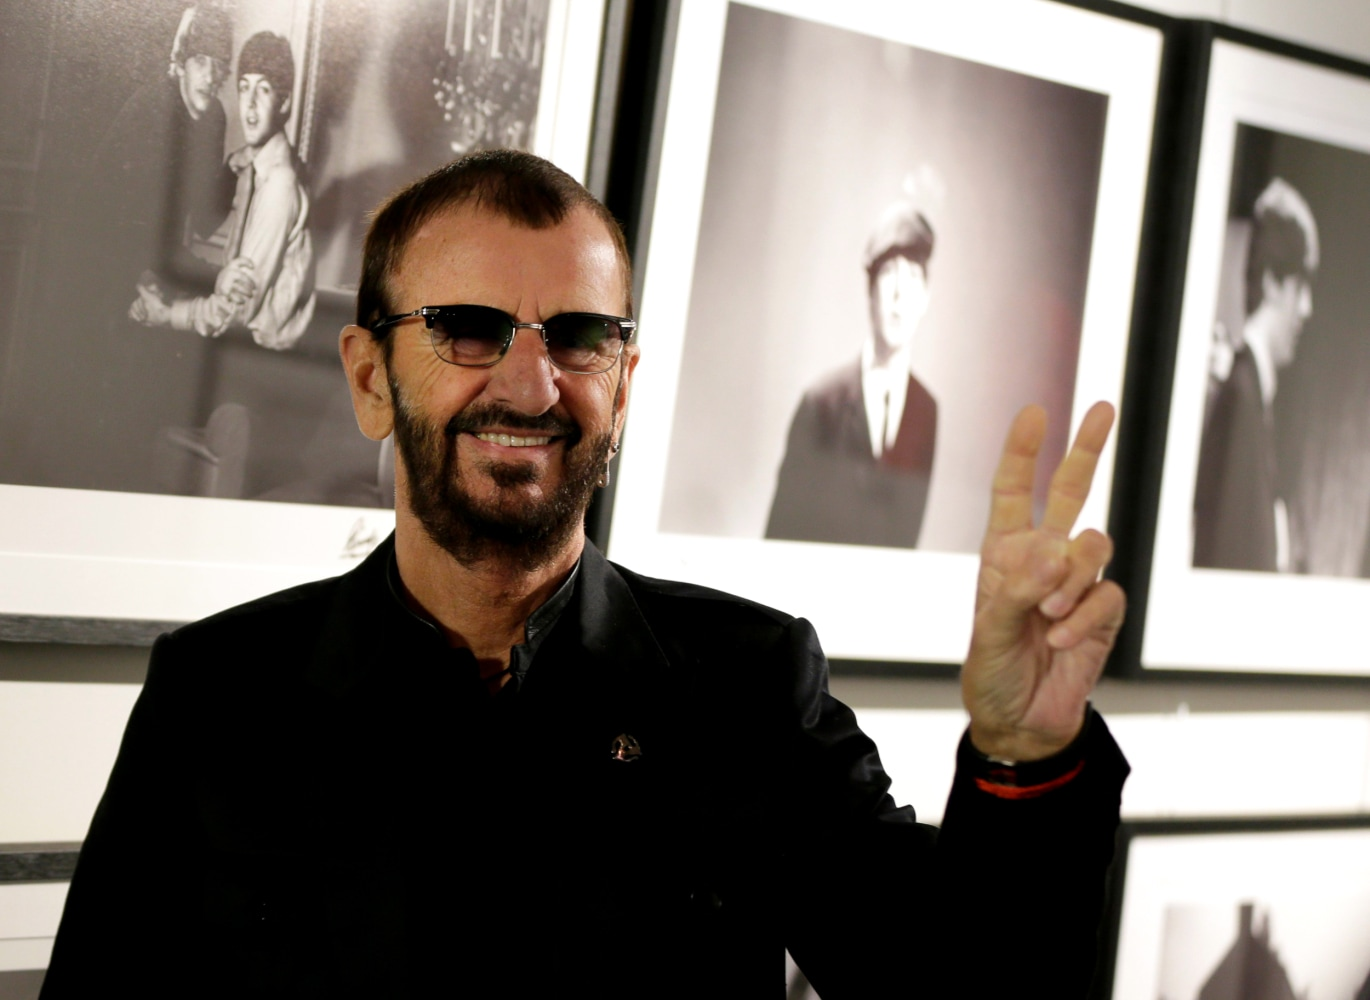 ringo starr - photo #38